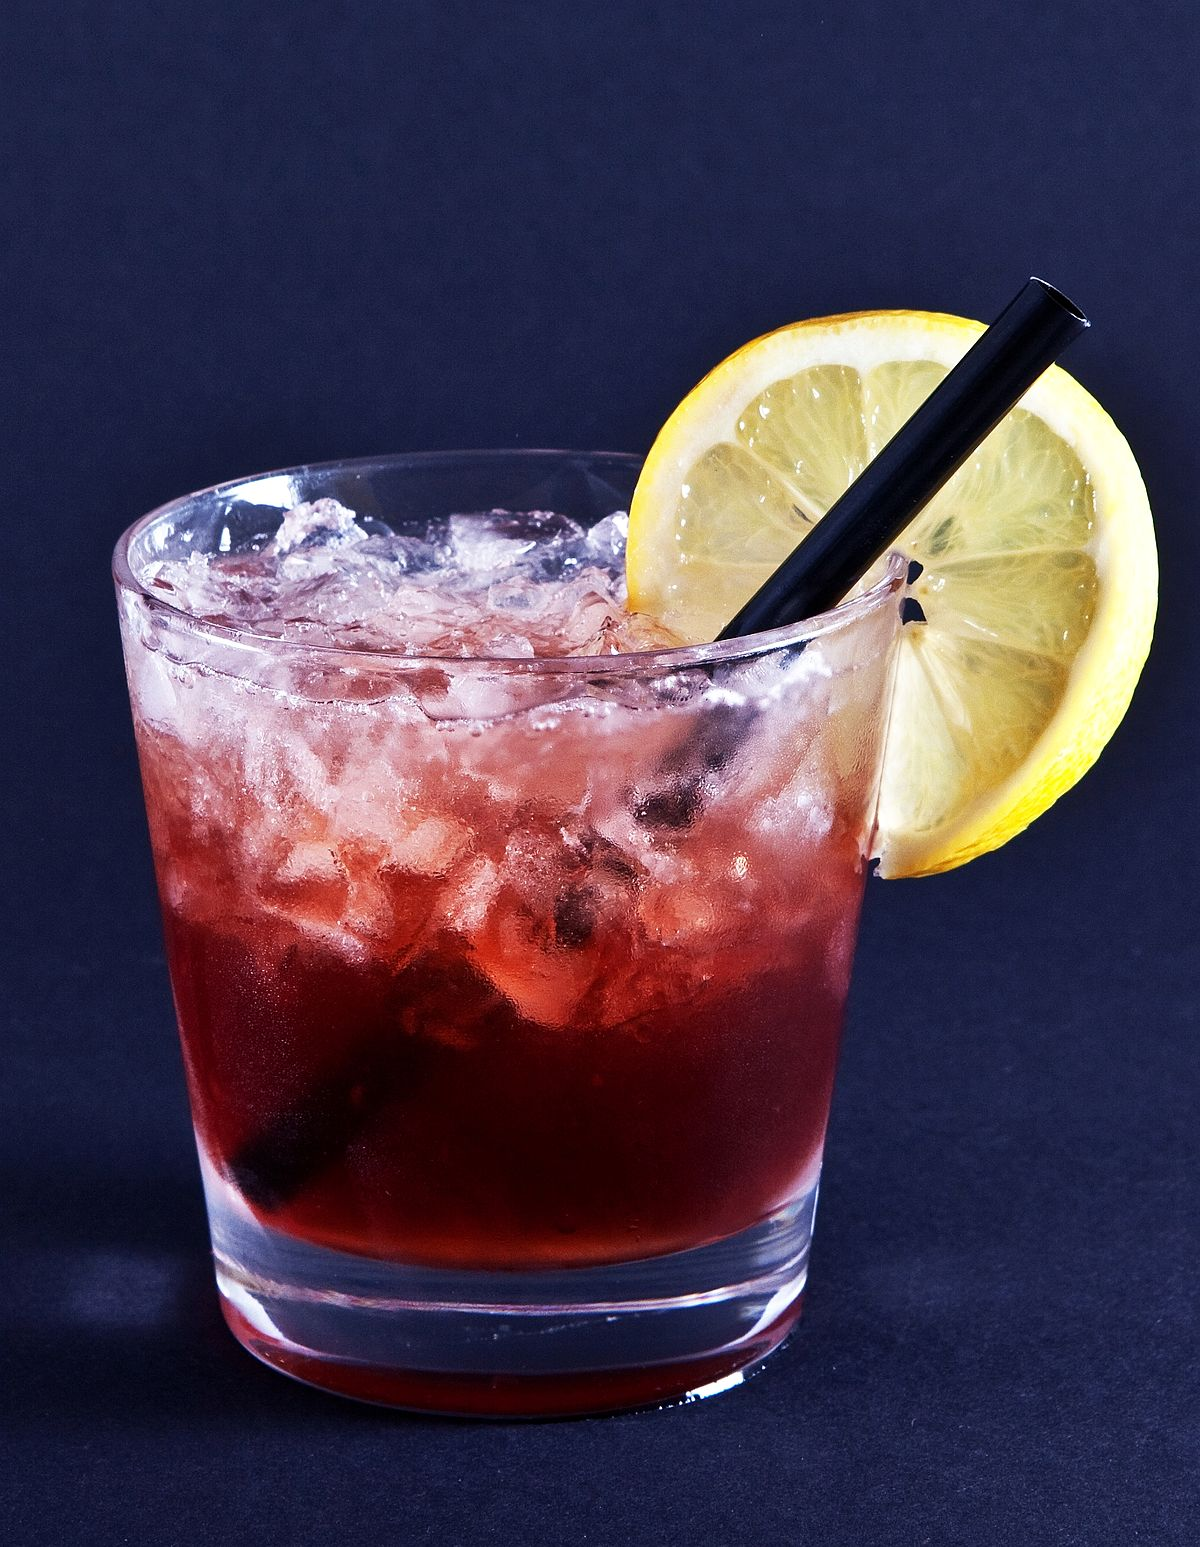 bramble cocktail drink wikipedia gin alcohol mixed wiki cocktail1 standard type